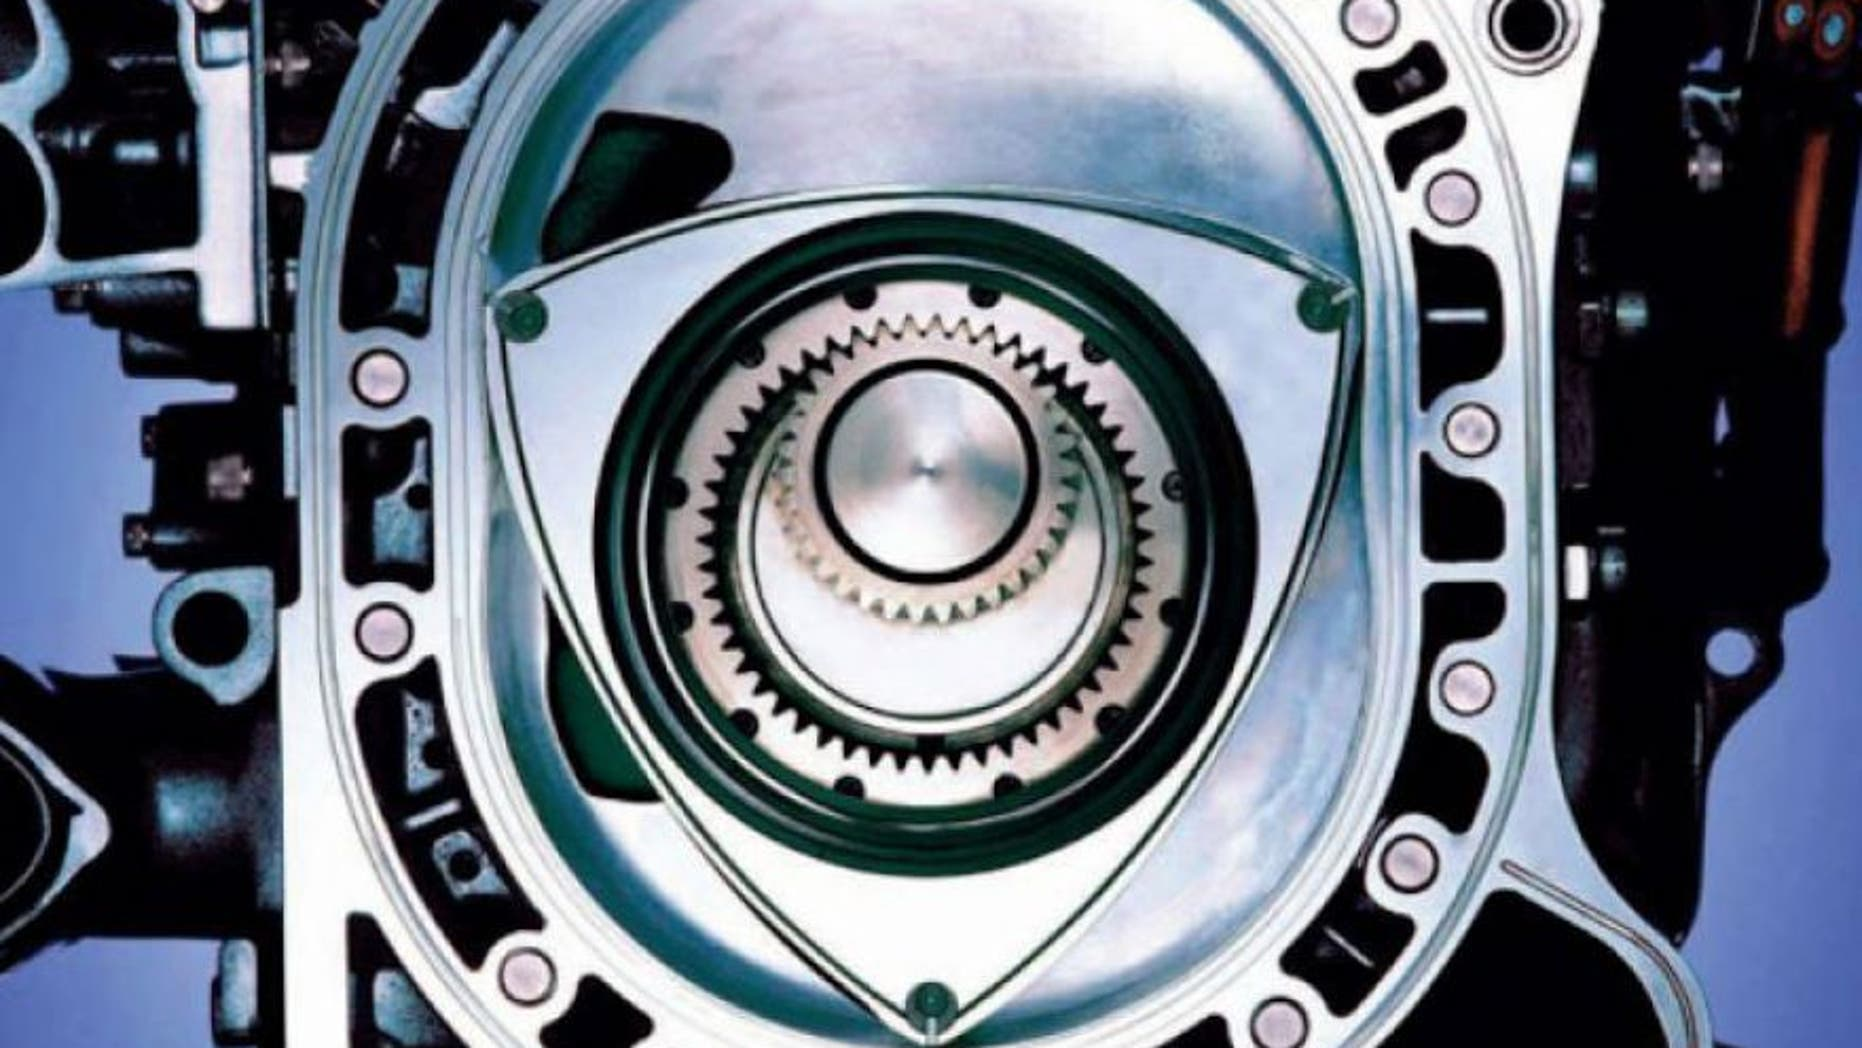 Mazda rotary engine returning in 2019 | Fox News